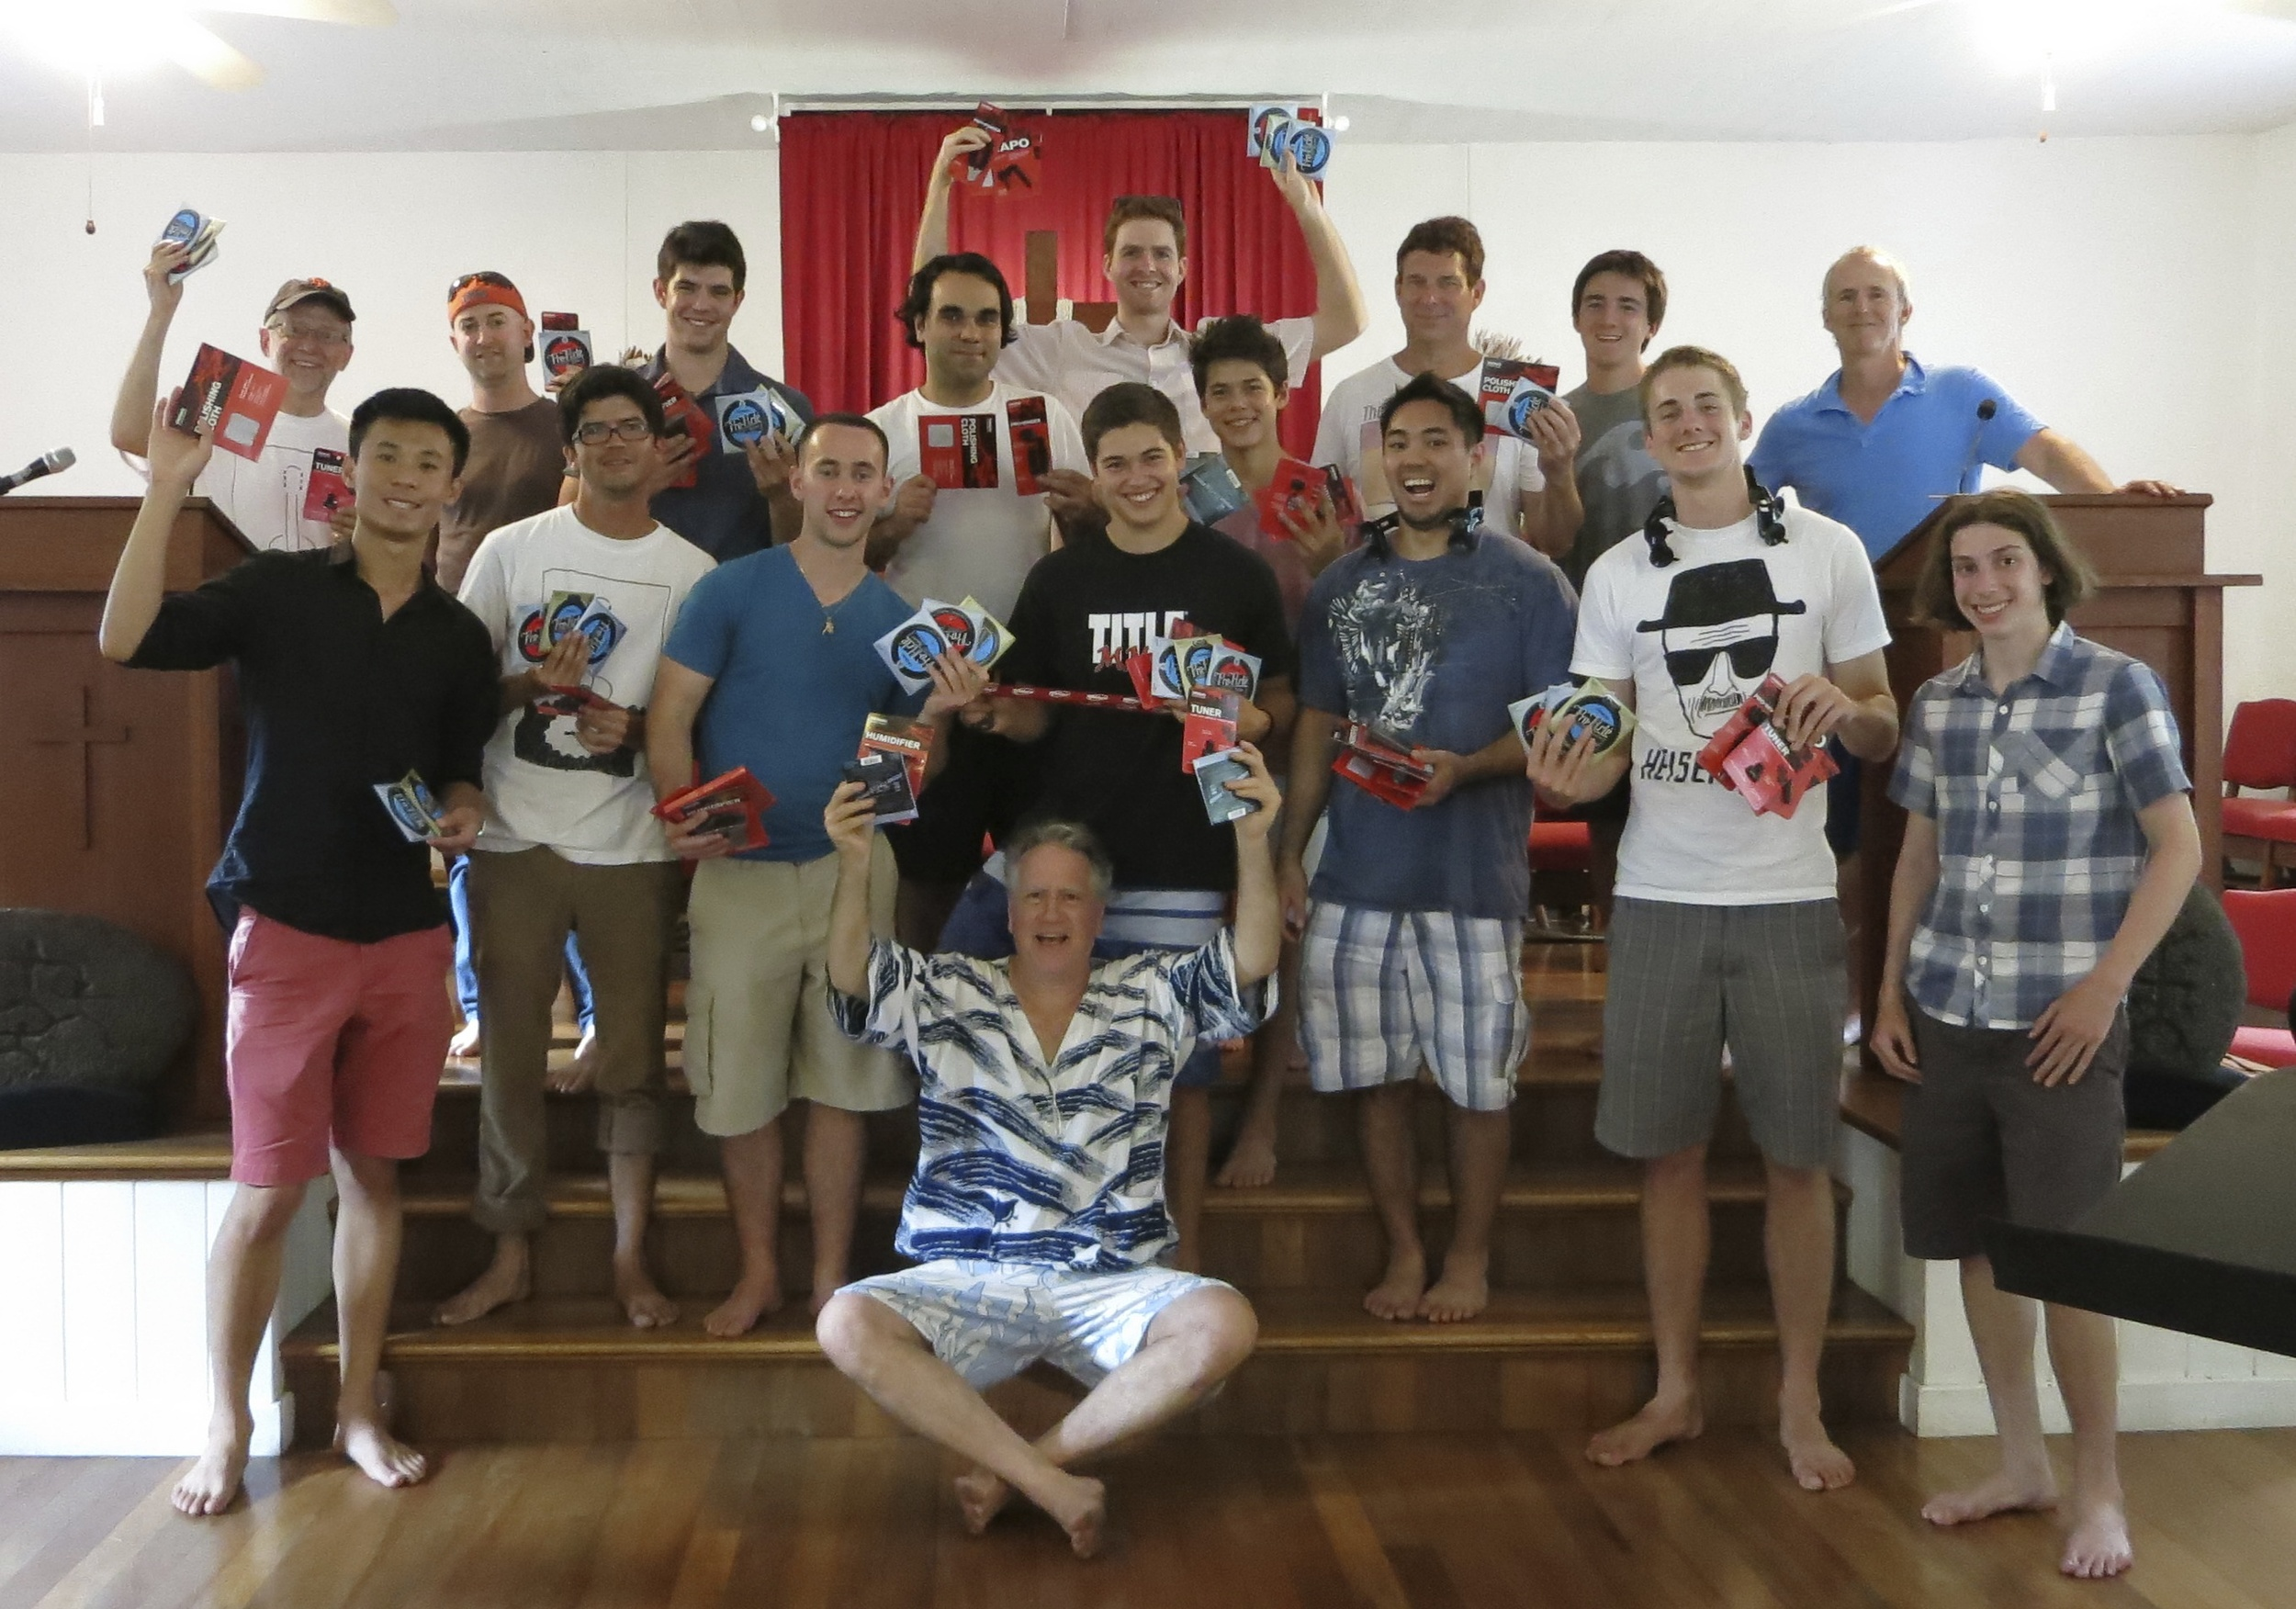 2014 class with D'Addario products